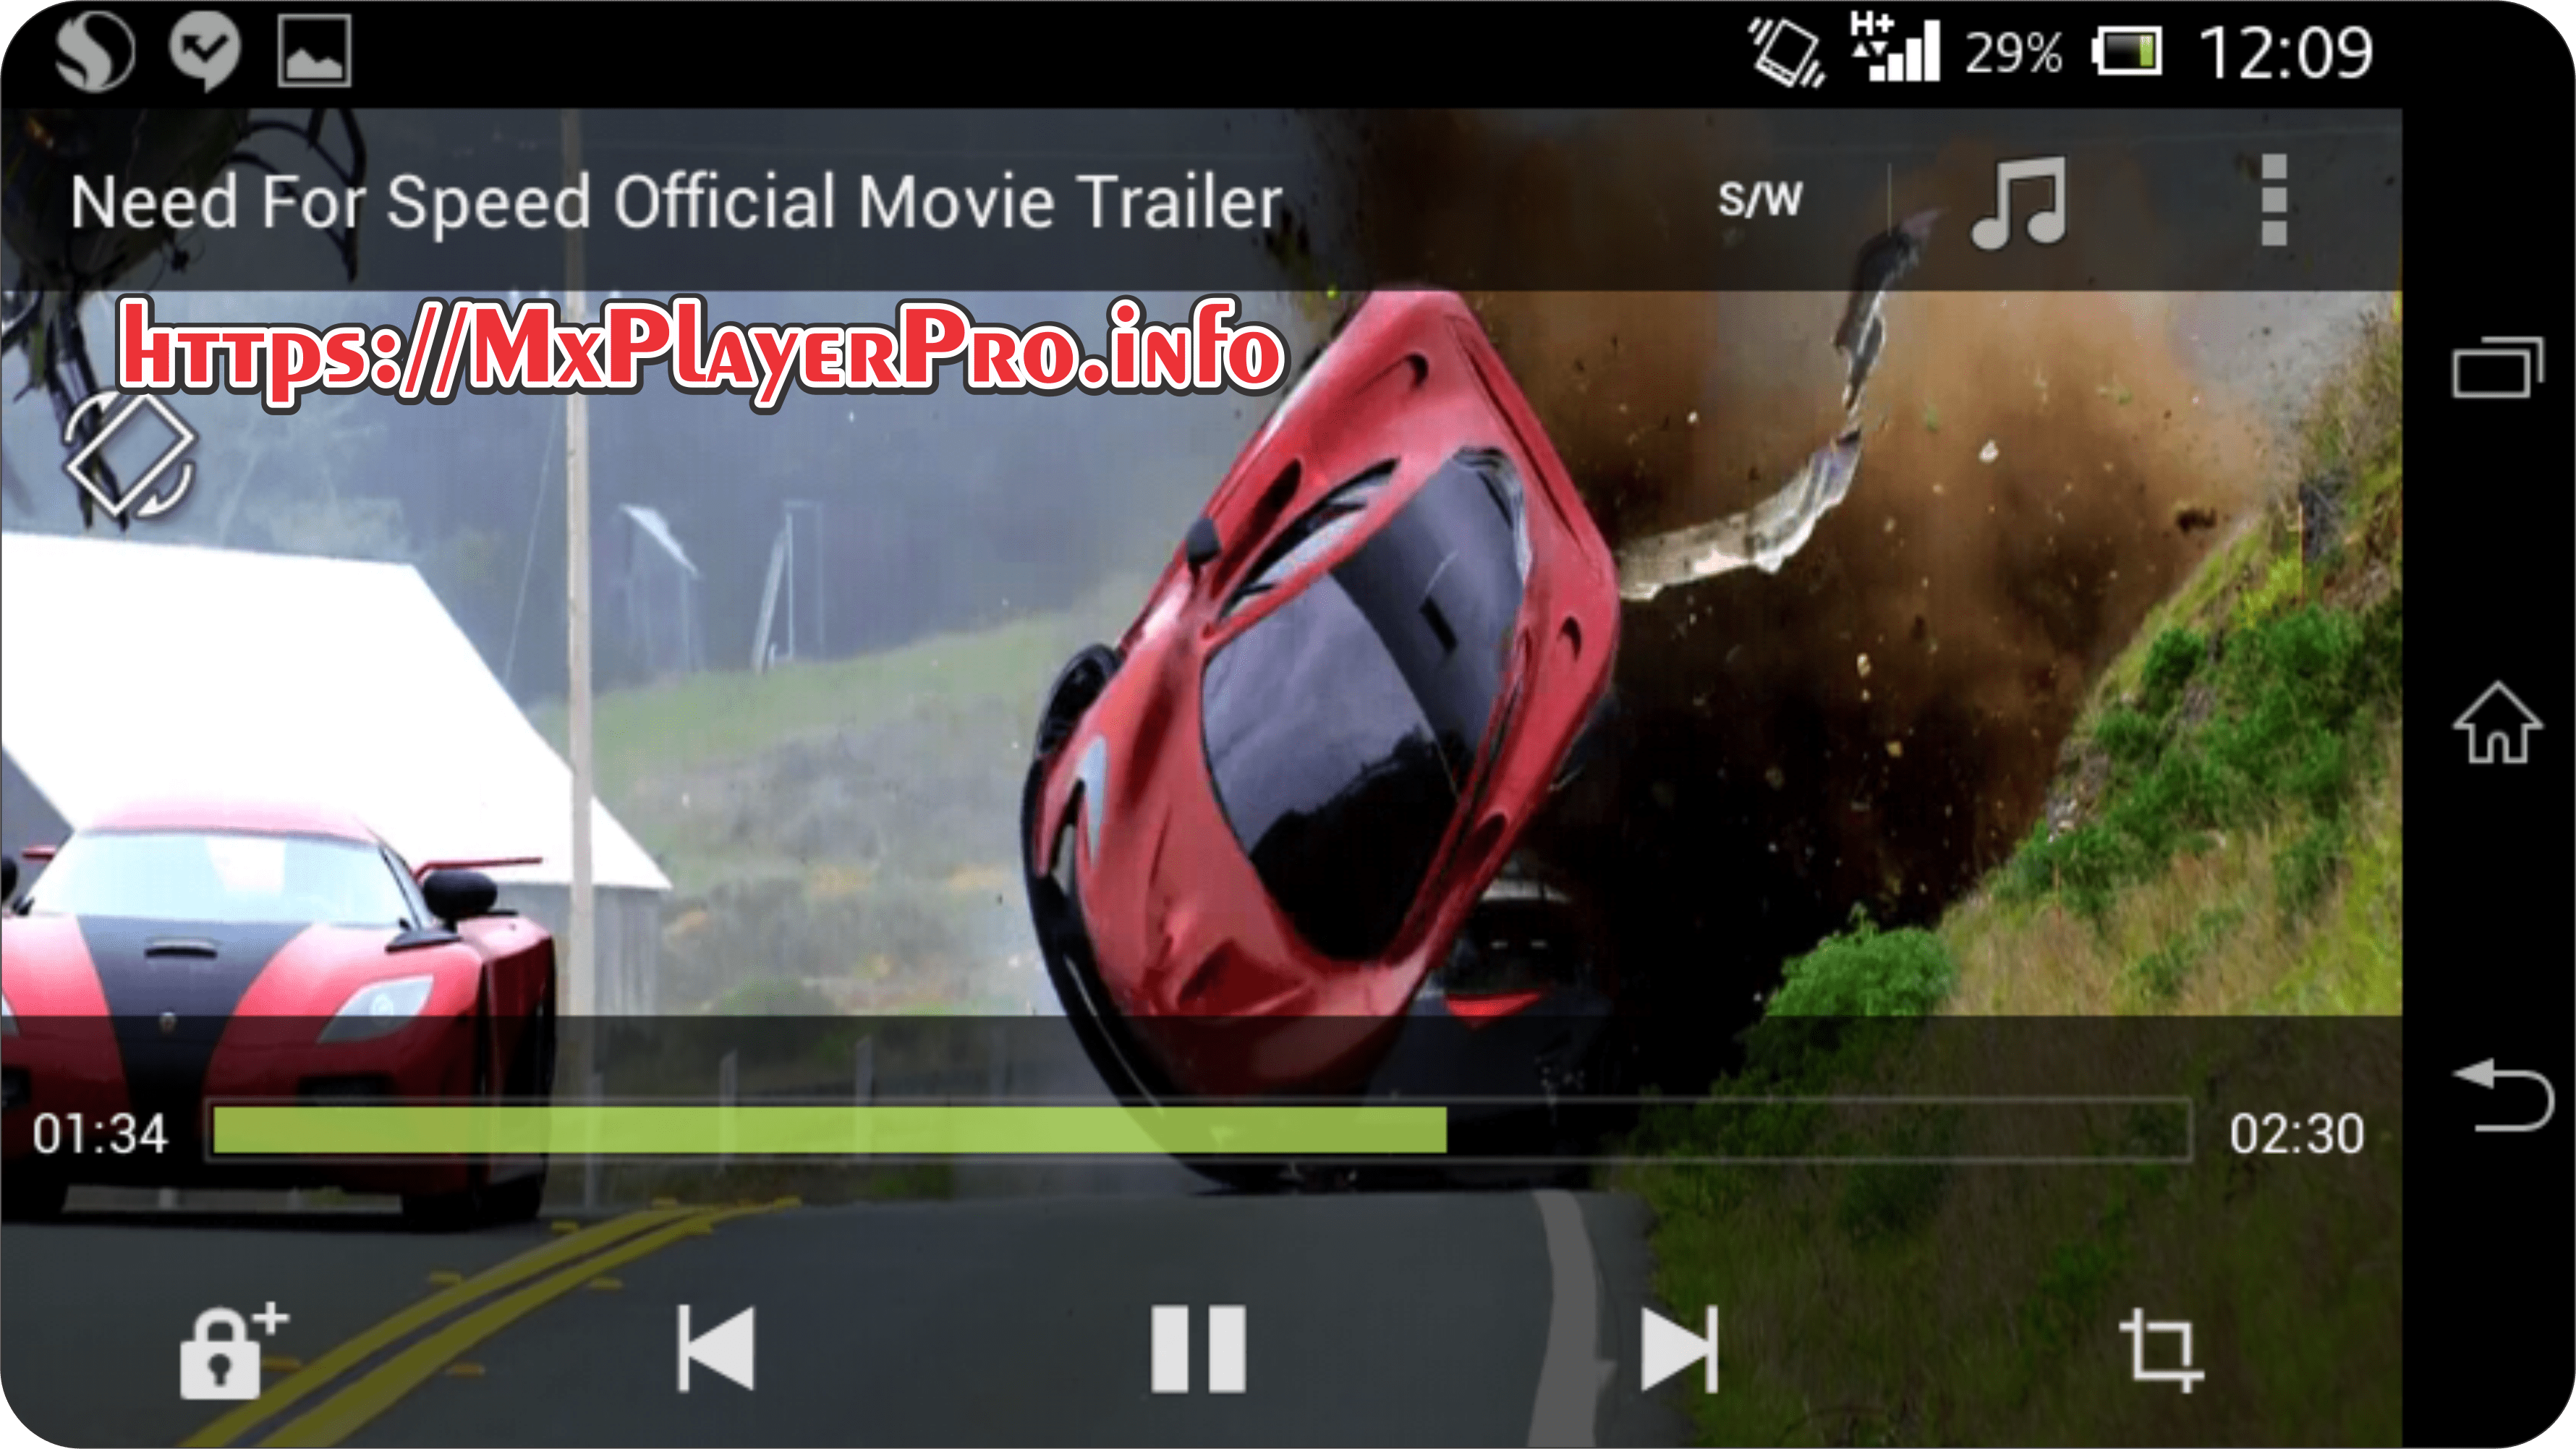 Download MX Player Pro Apk 100 Free Player download